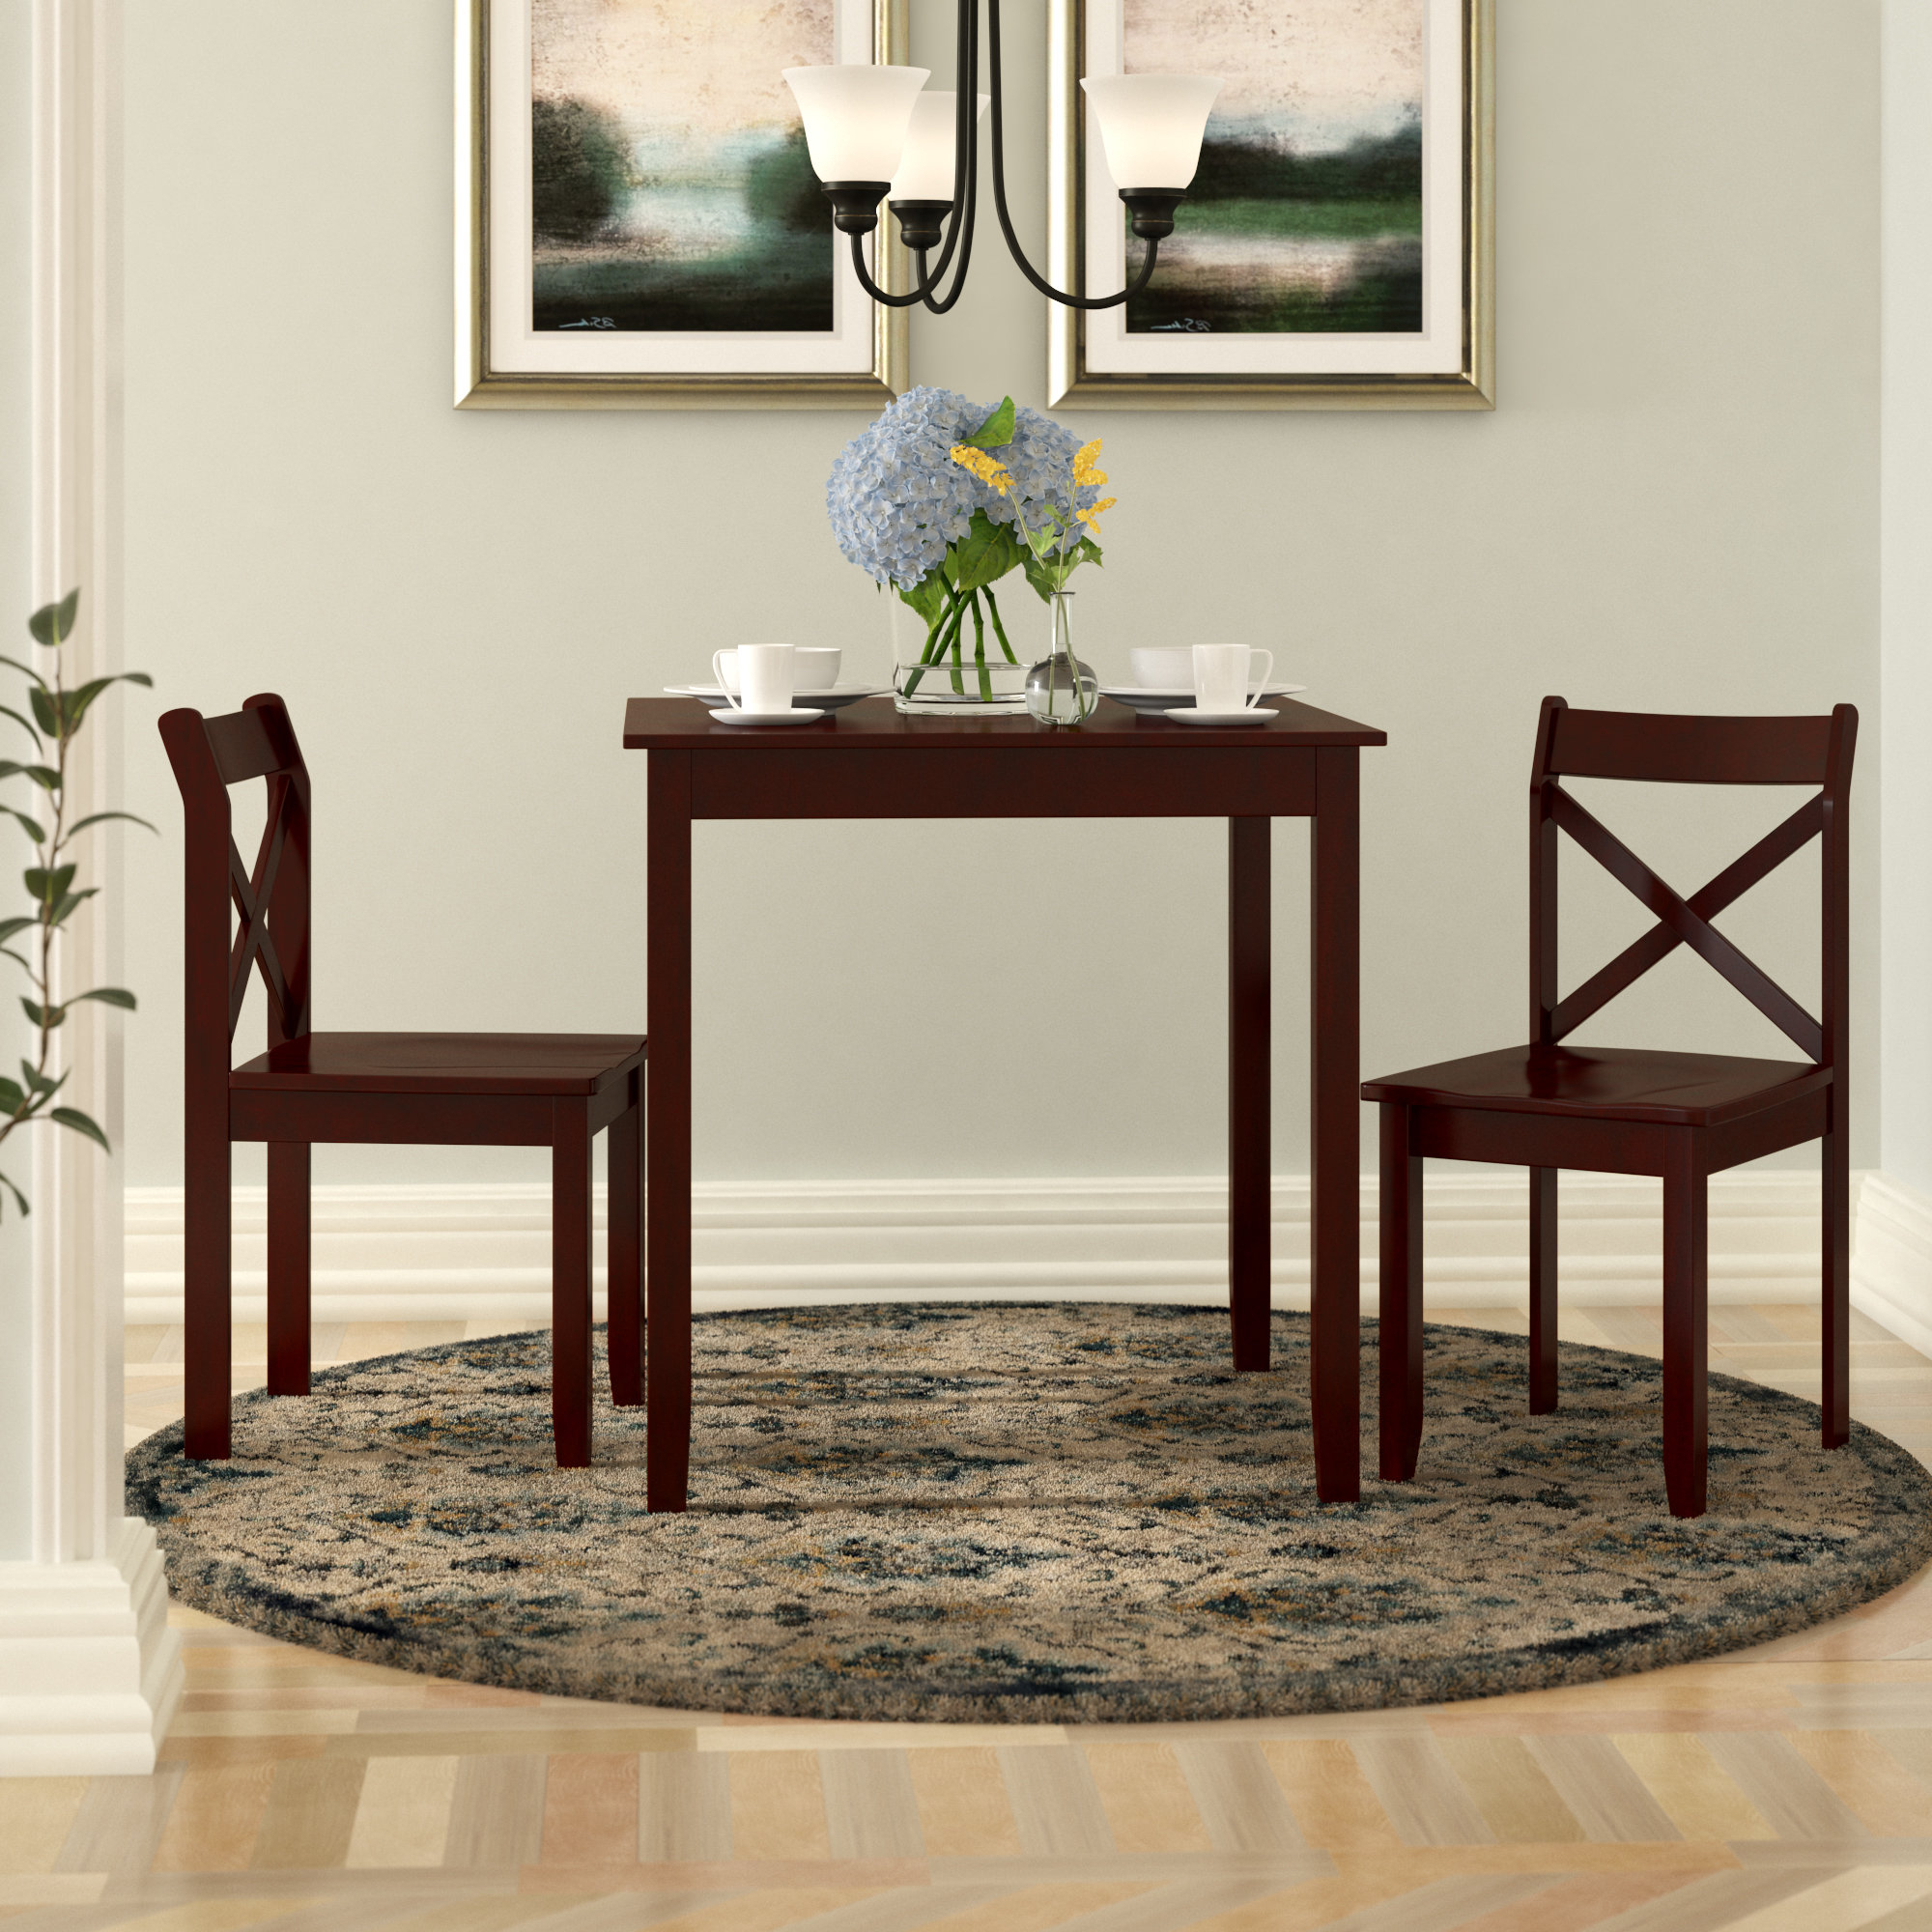 Well Liked Charlton Home Flossmoor 3 Piece Dining Set & Reviews (View 4 of 25)